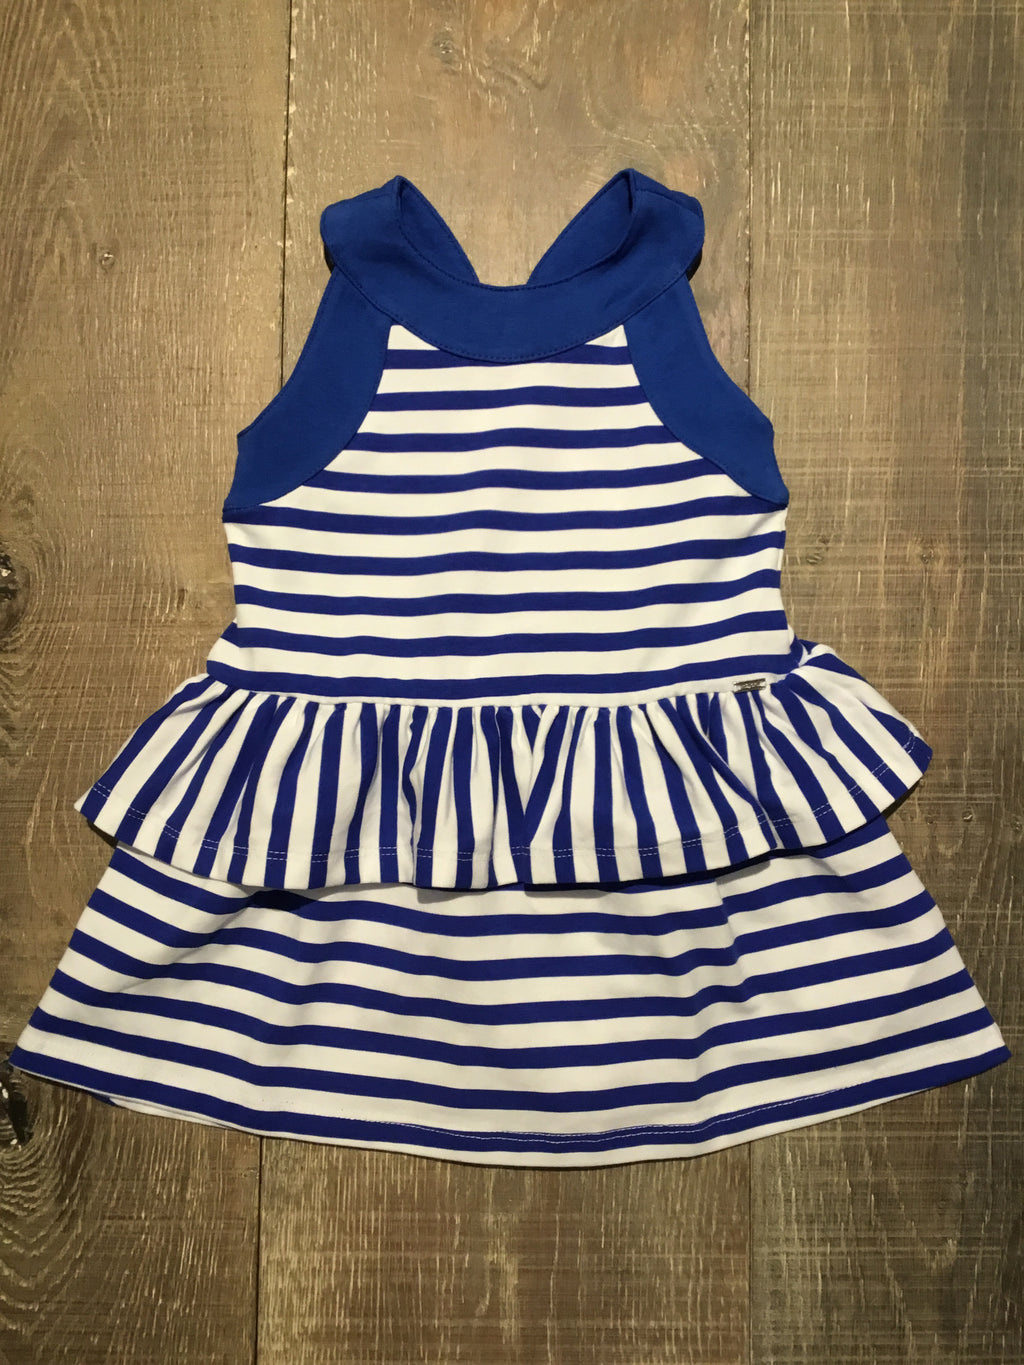 Blue Striped Sundress